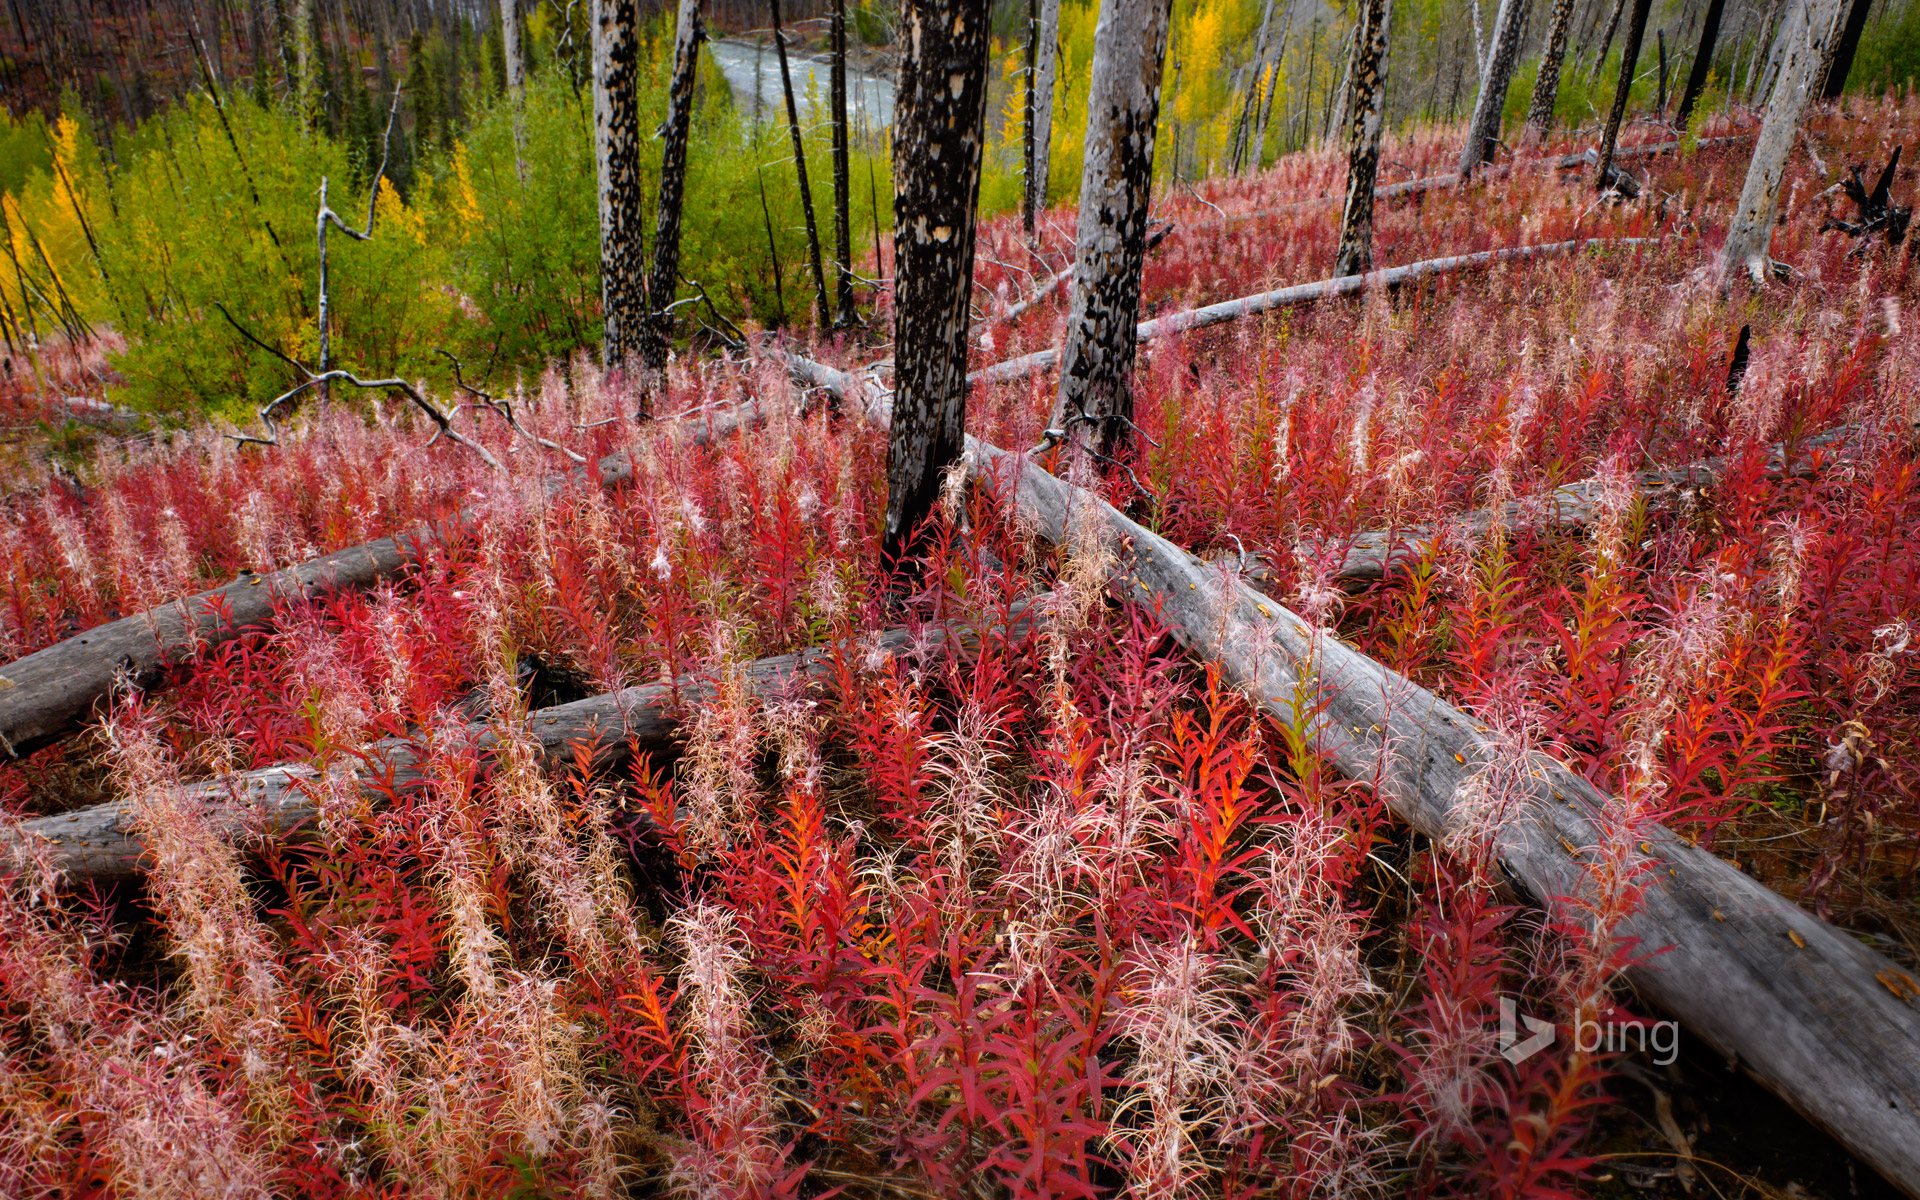 Fireweed reclaiming burned land near the Little Klappan River in British Columbia, Canada